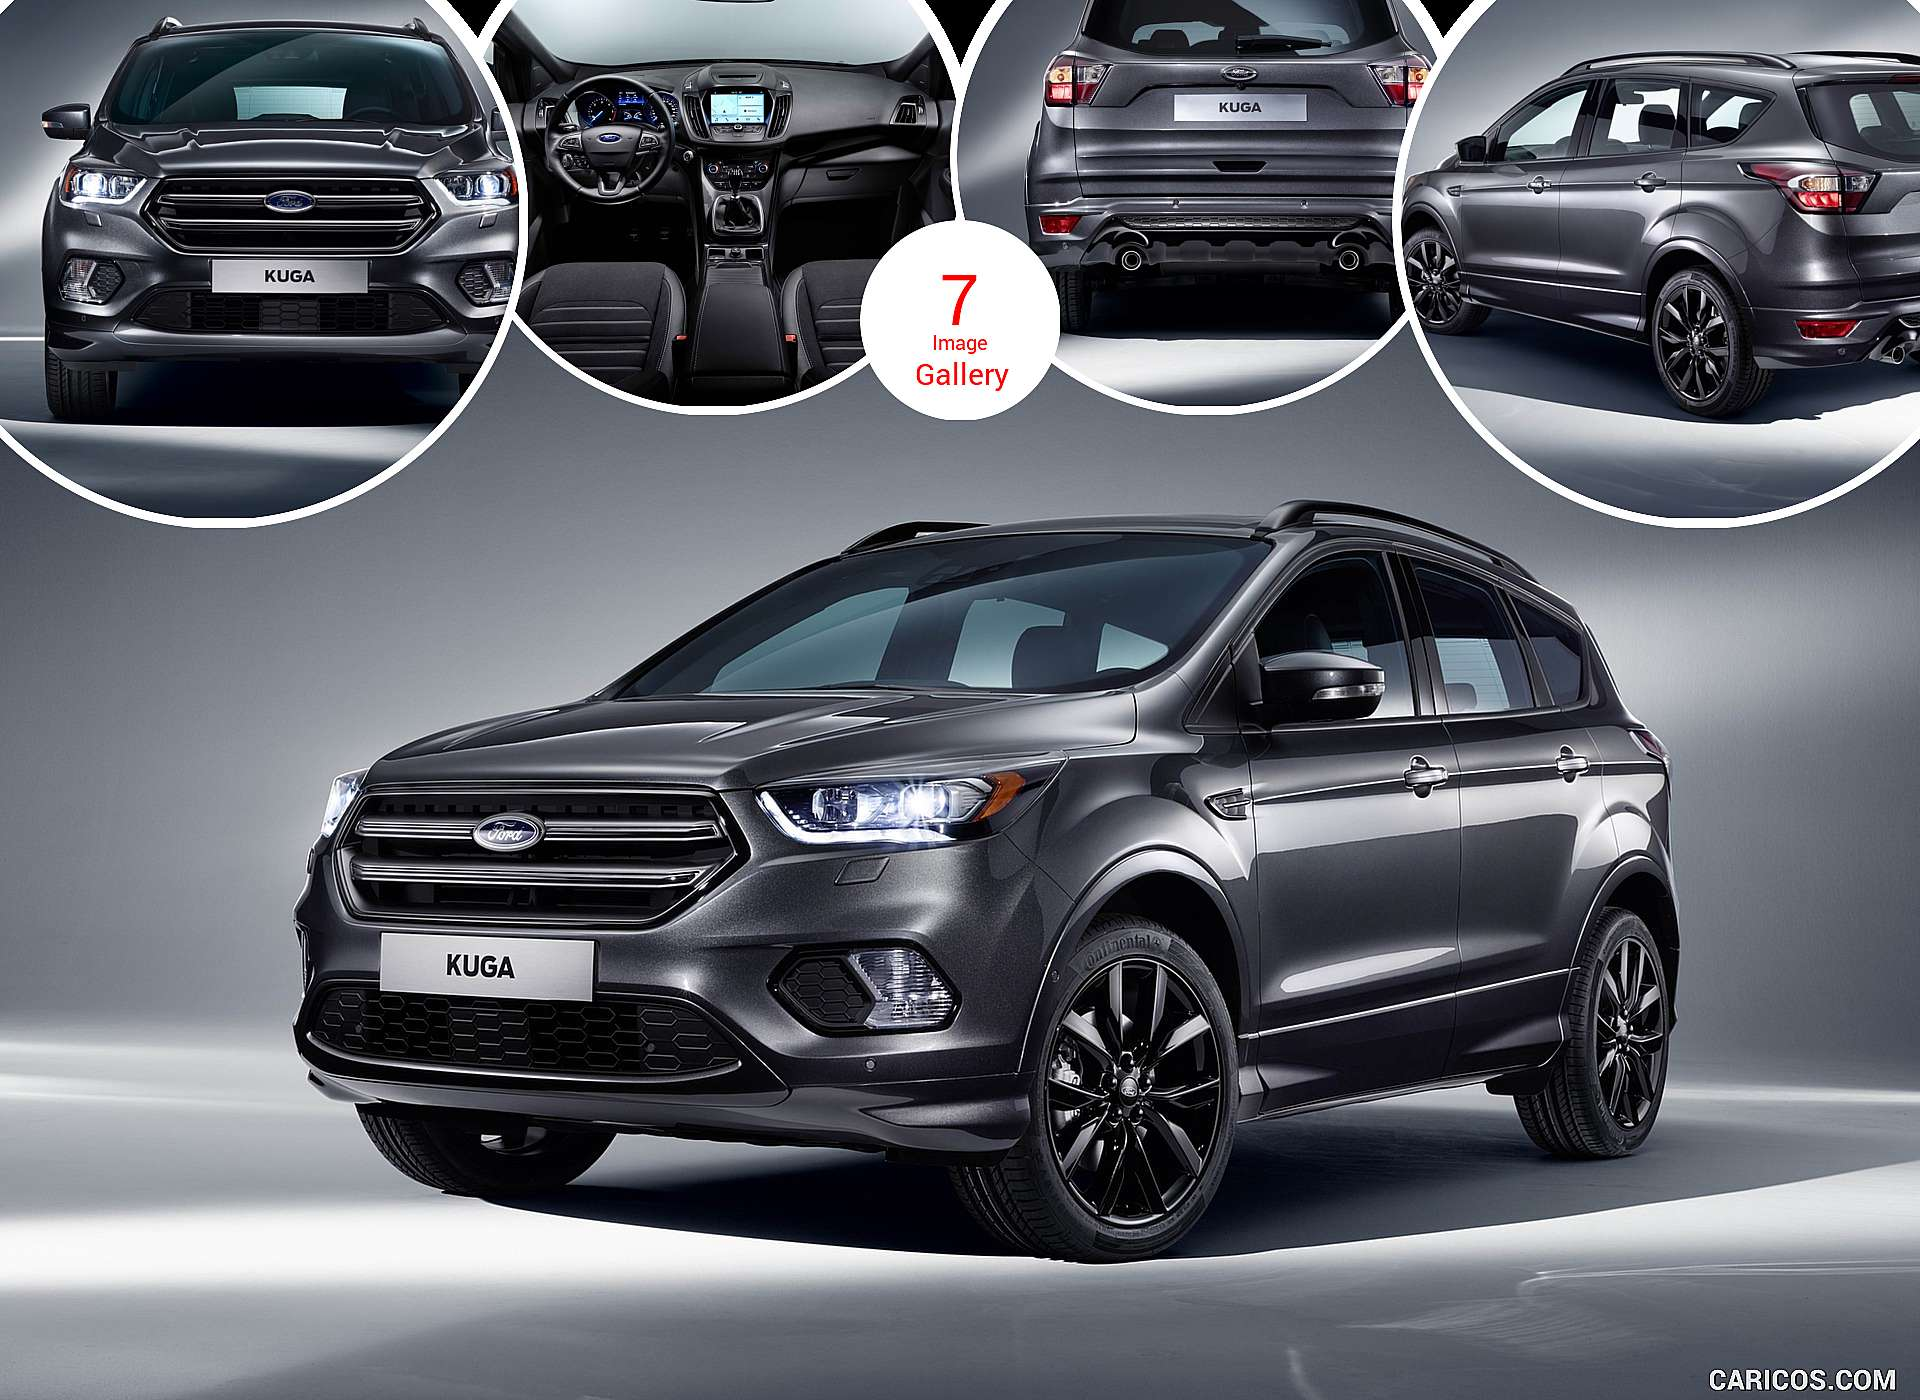 2017 ford kuga. Black Bedroom Furniture Sets. Home Design Ideas